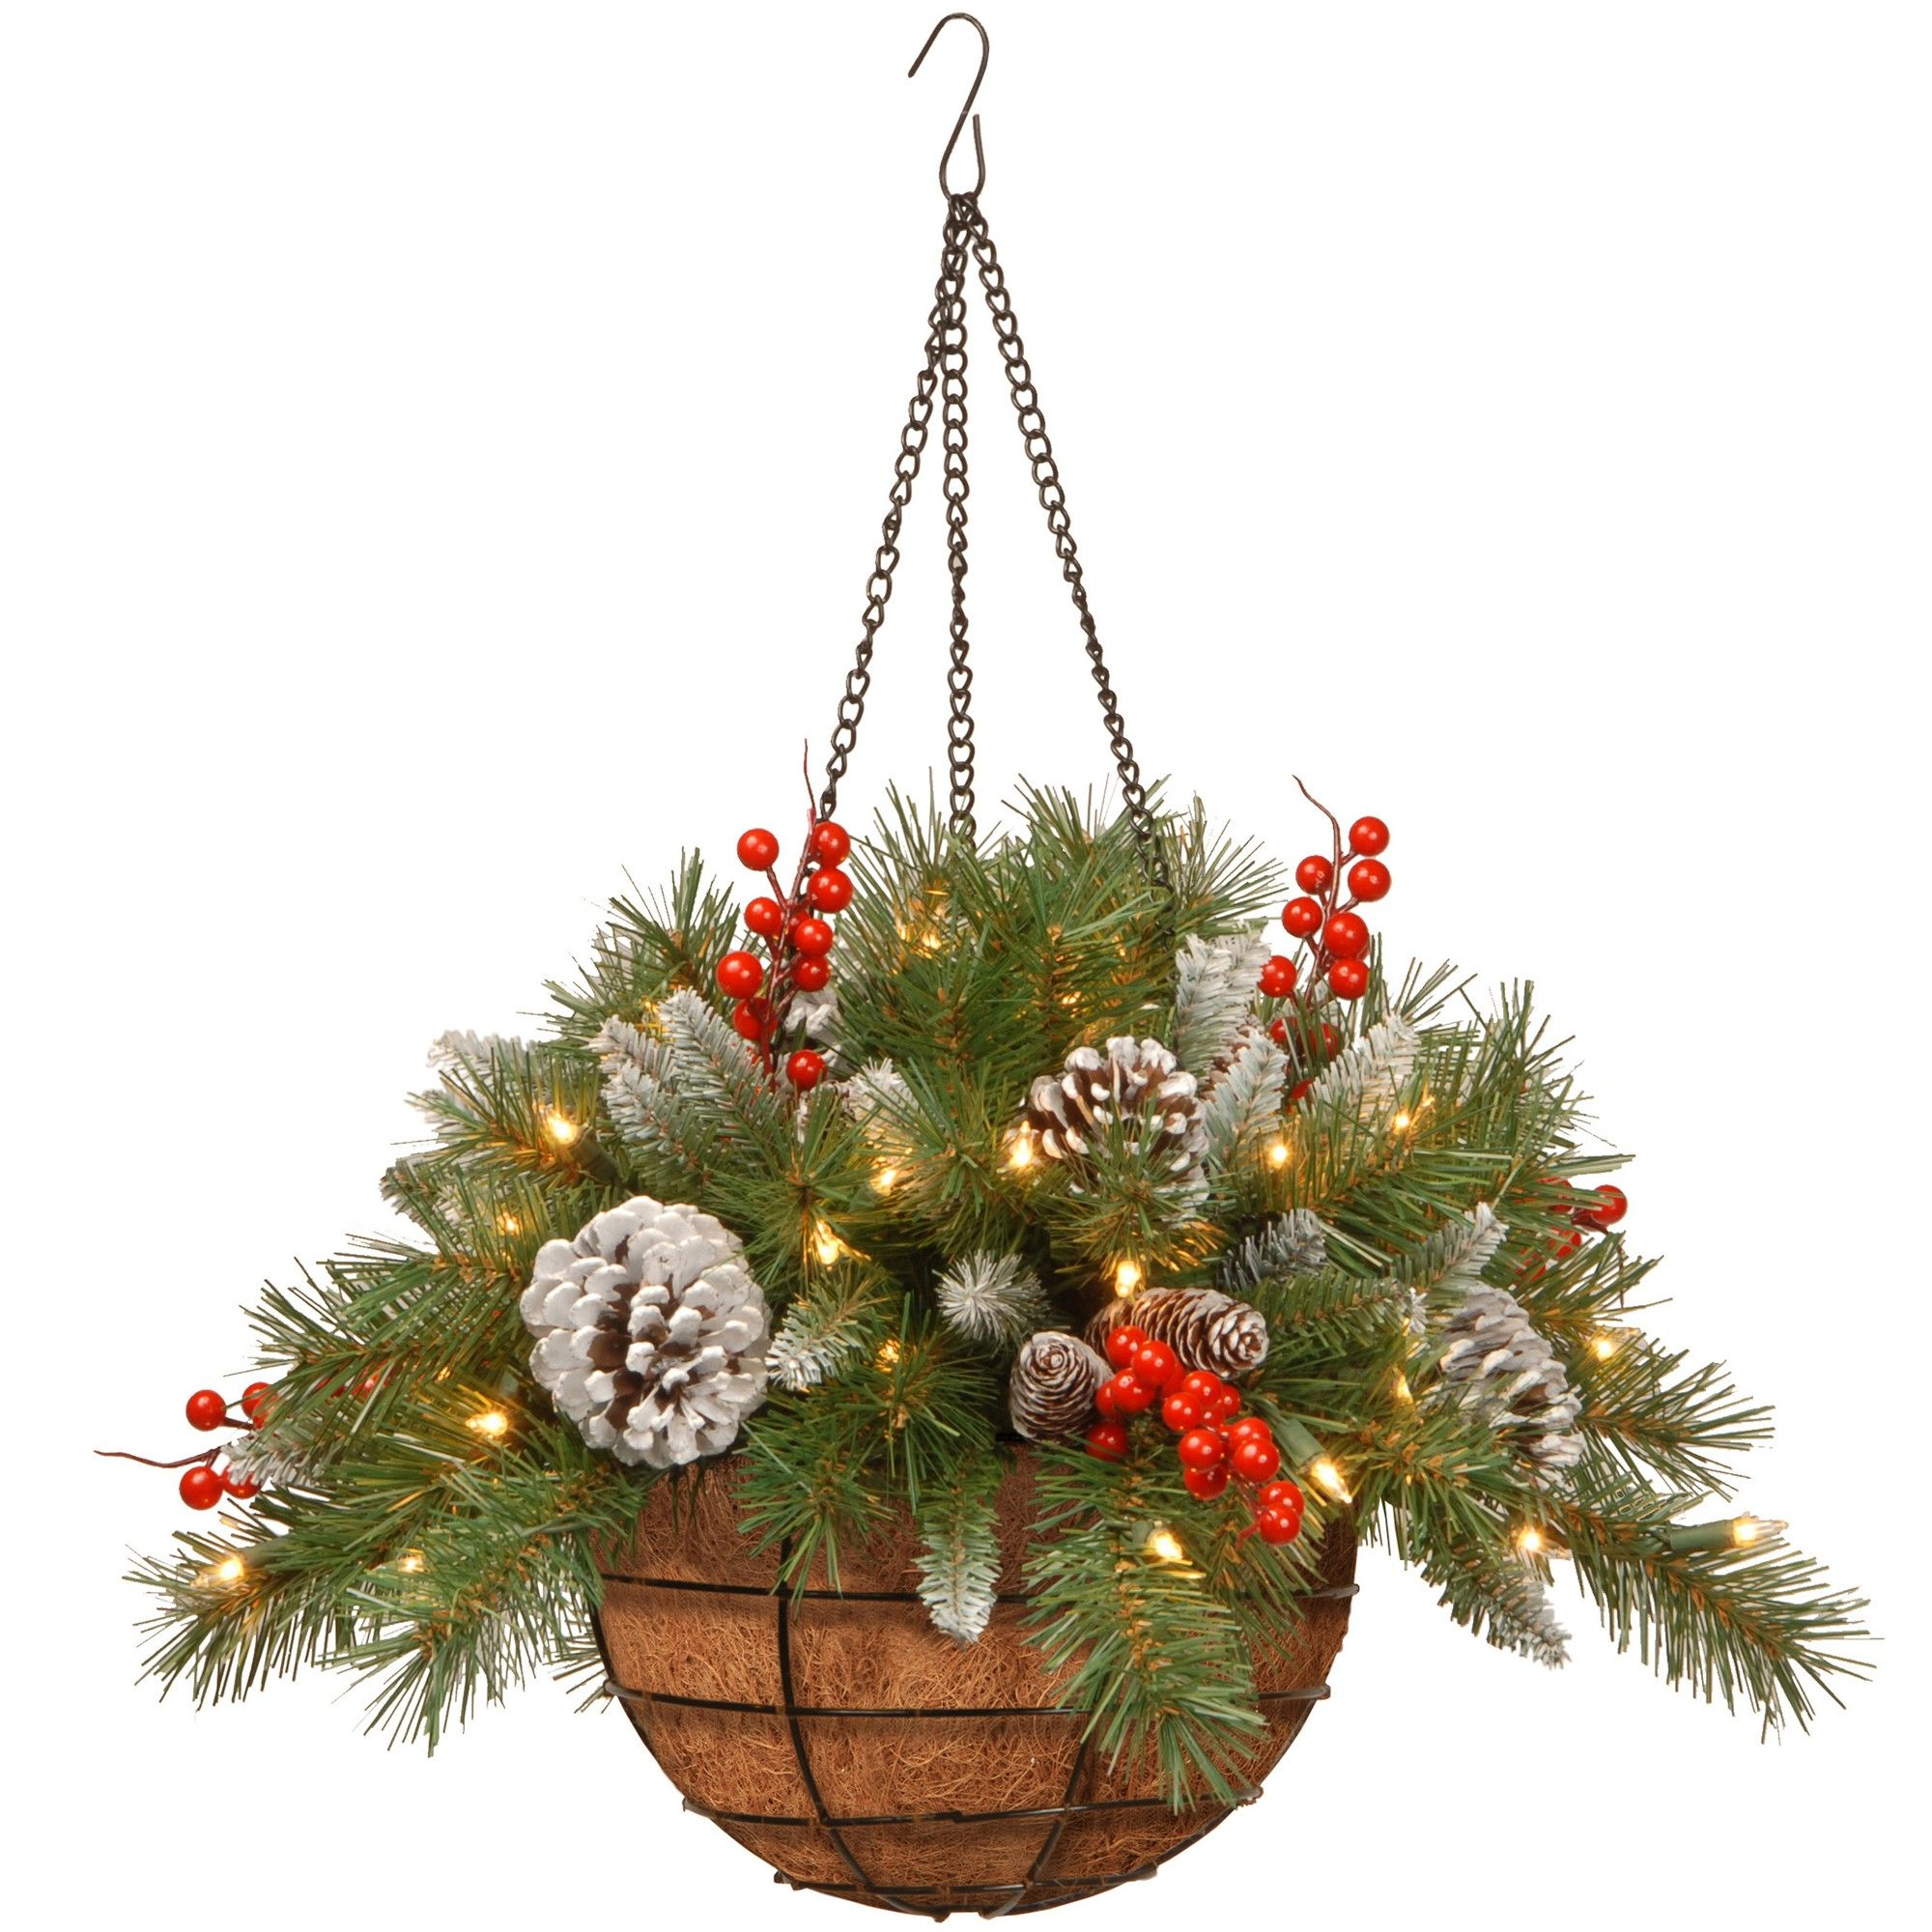 A Hanging Basket With Pine Tree Branches Or Any Christmas Tree Branch Pi Christmas Hanging Baskets Fun Christmas Decorations Pine Cone Christmas Decorations